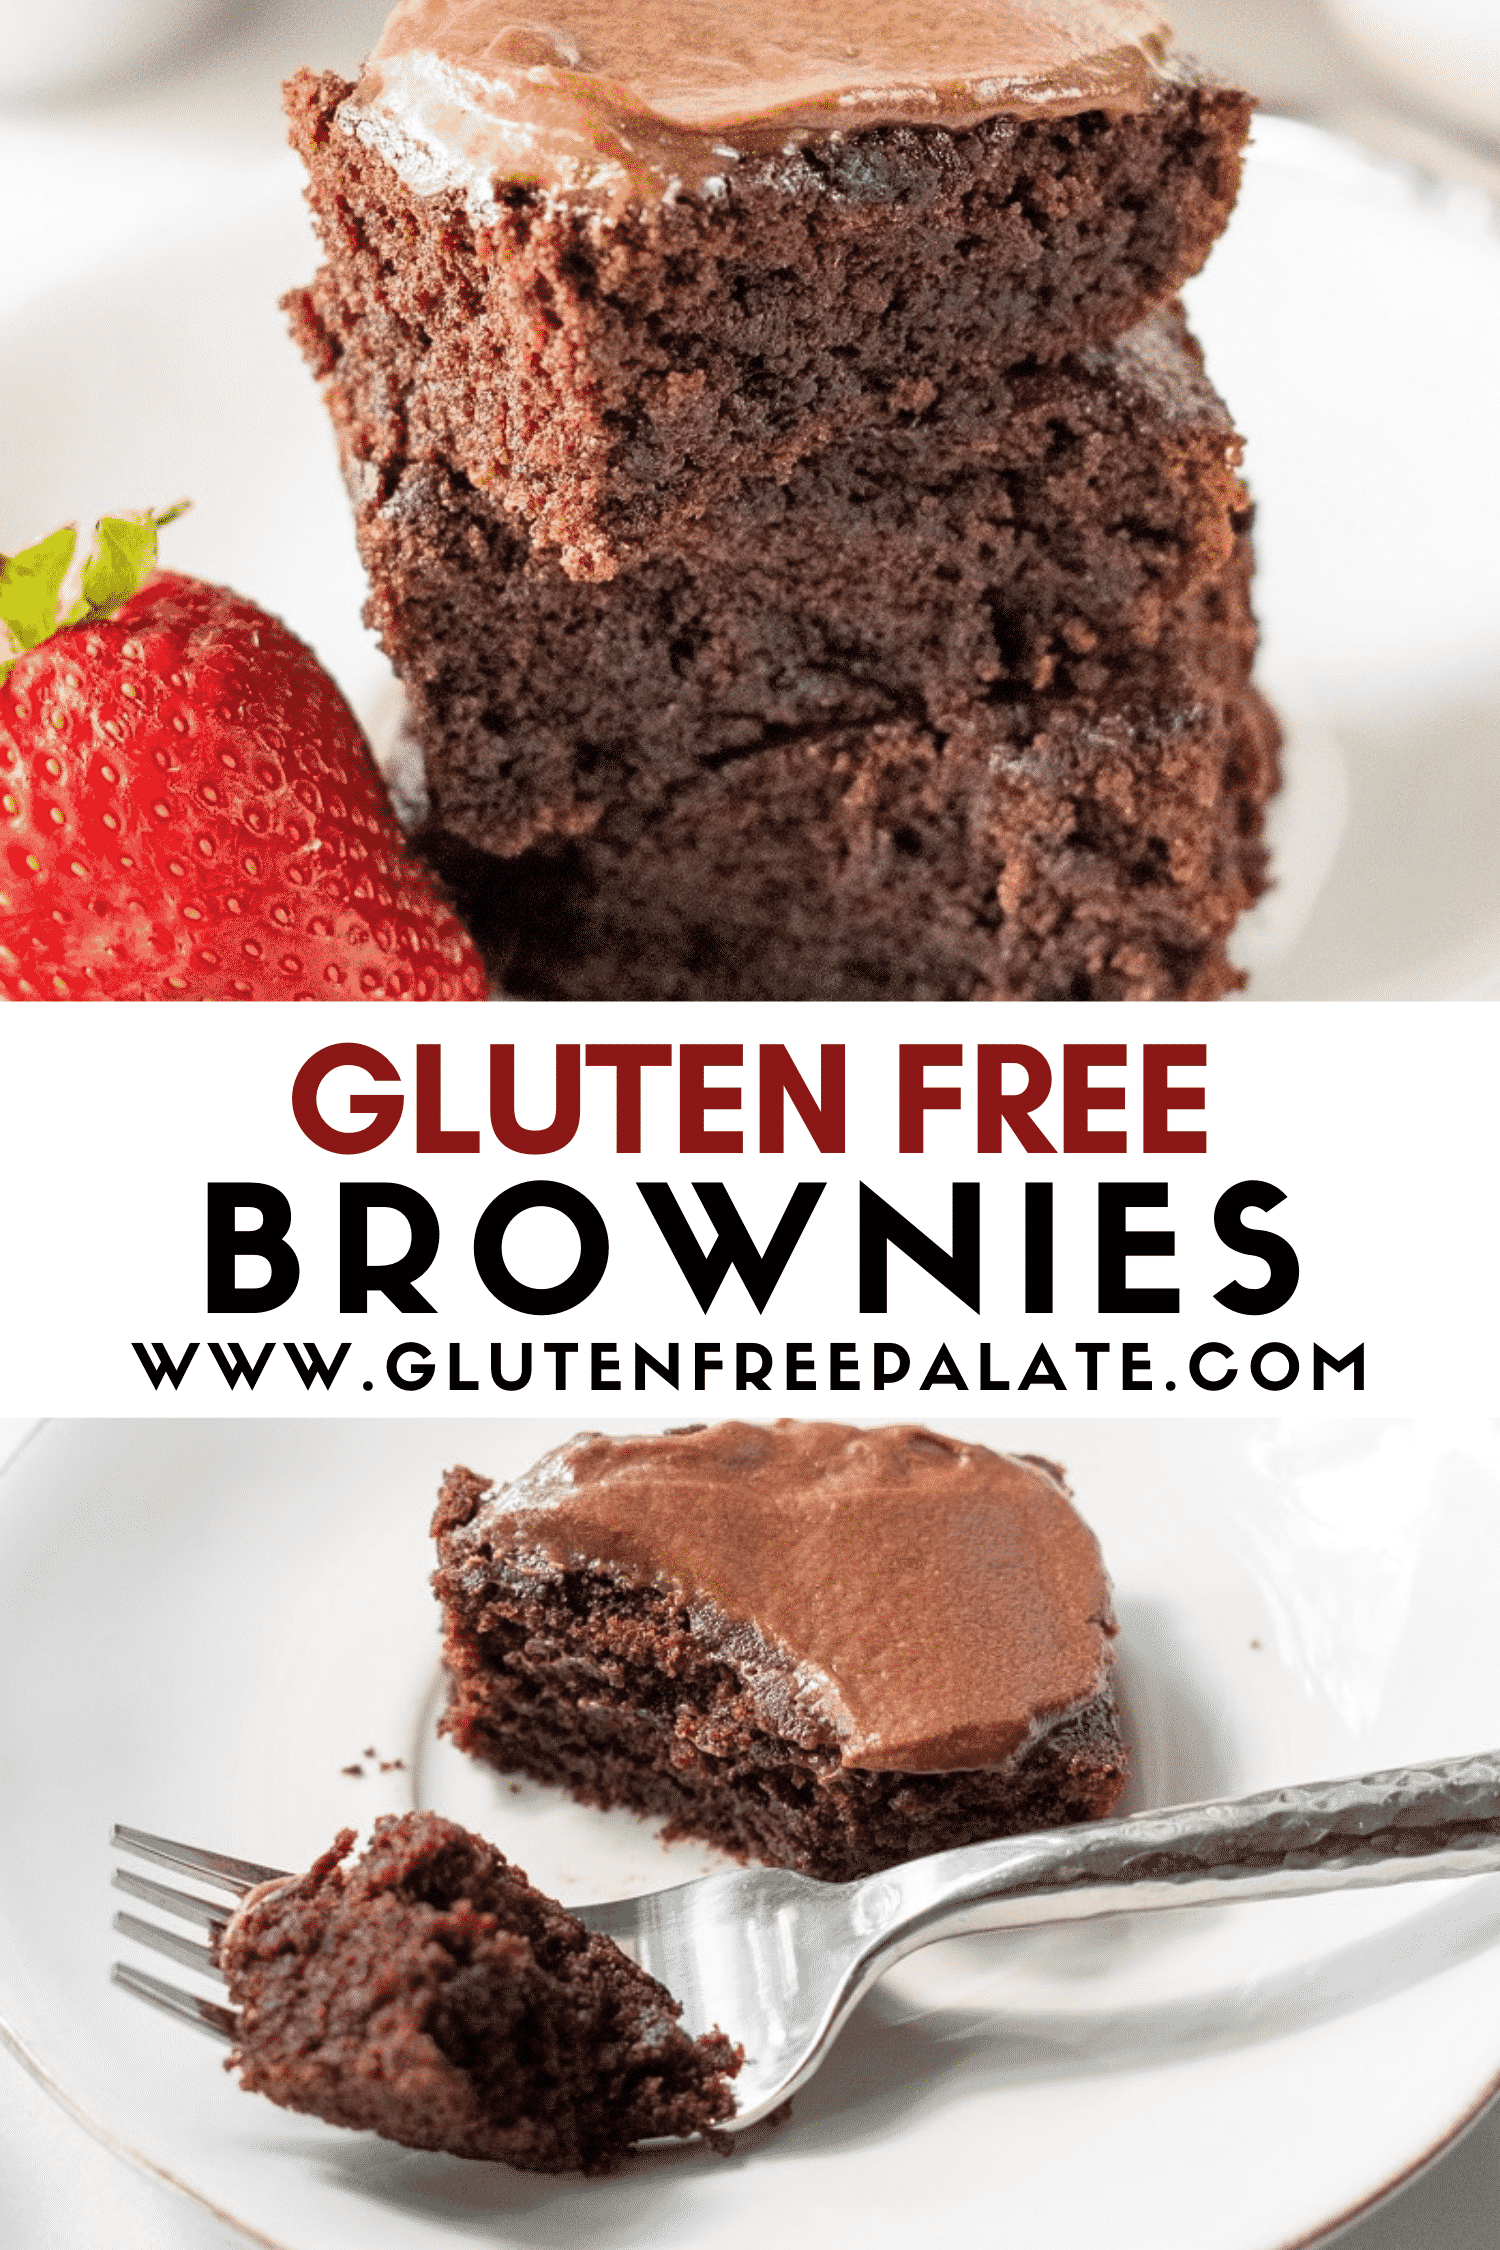 image of gluten free brownies with text overlay in center